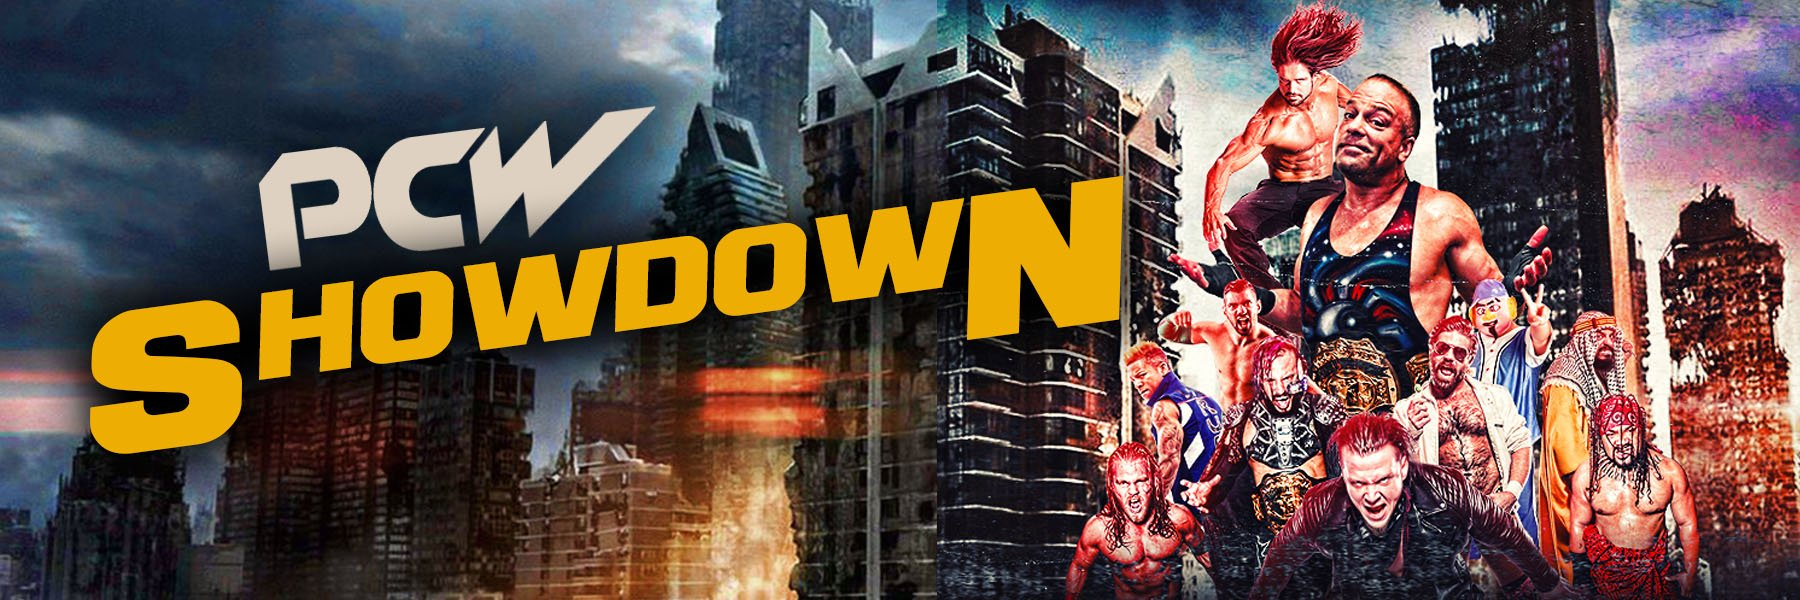 PCW ULTRA | SHOWDOWN: Subscribe $4.99 mo. // Rent $2.99 // Buy $9.99